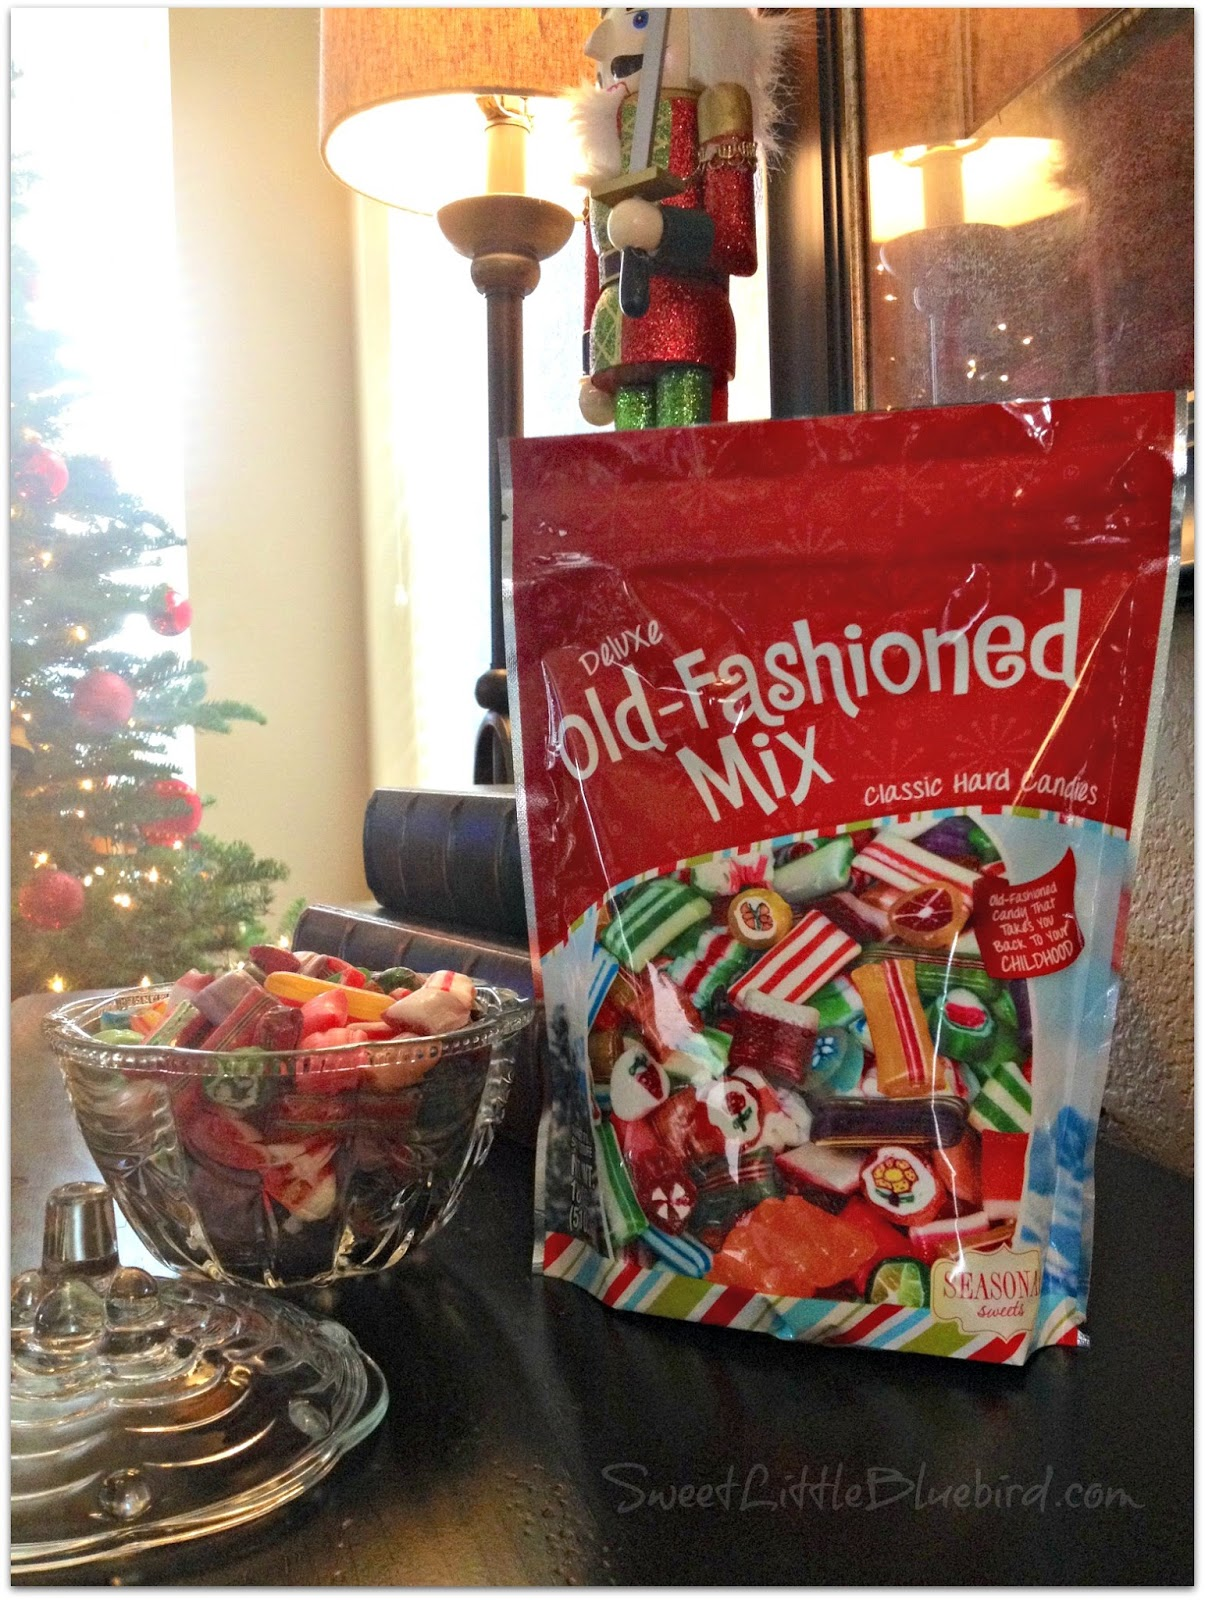 if you have a walgreens give them a call they might have this mix they also carried a bag of ribbon candy